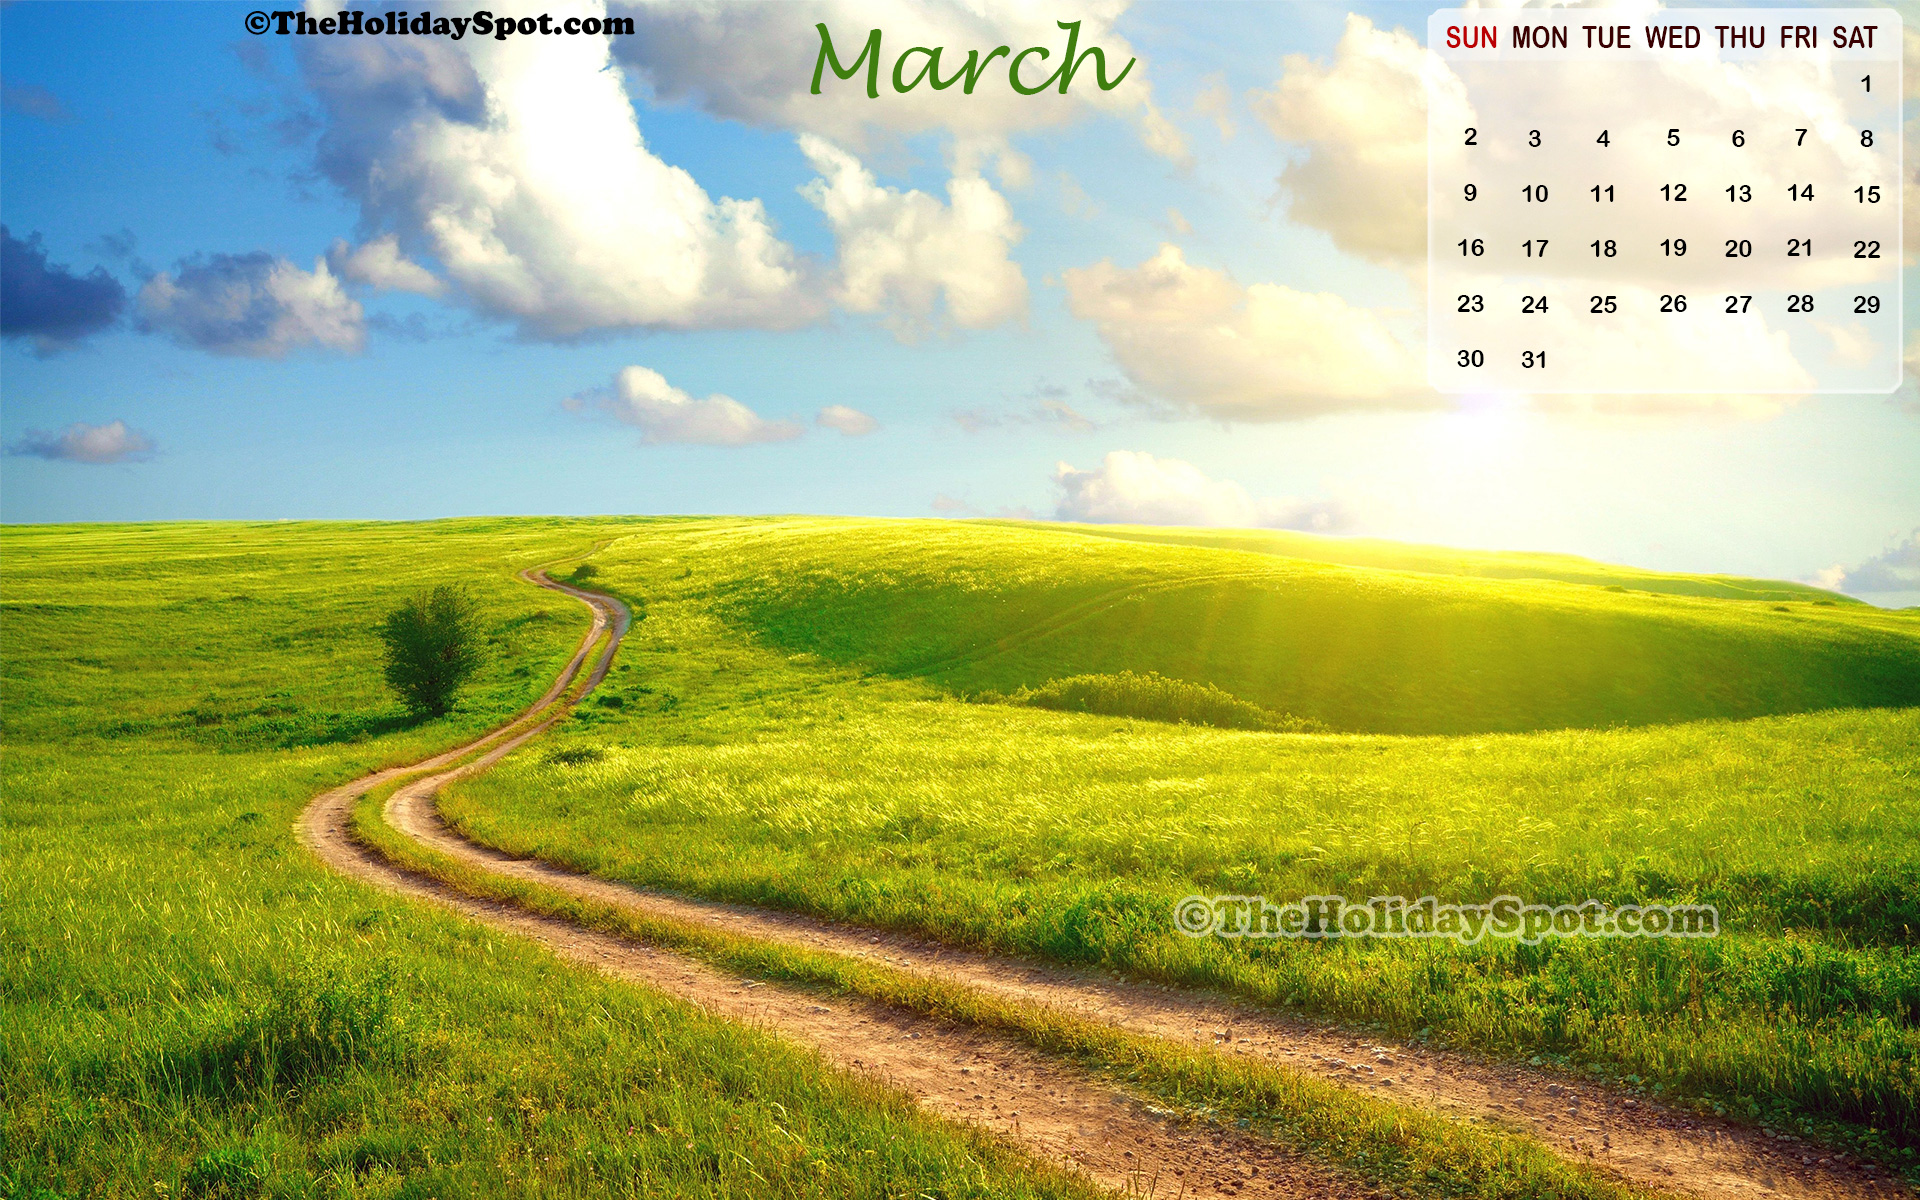 High resolution calendar wallpaper of March 2014 featuring lustrous 1920x1200